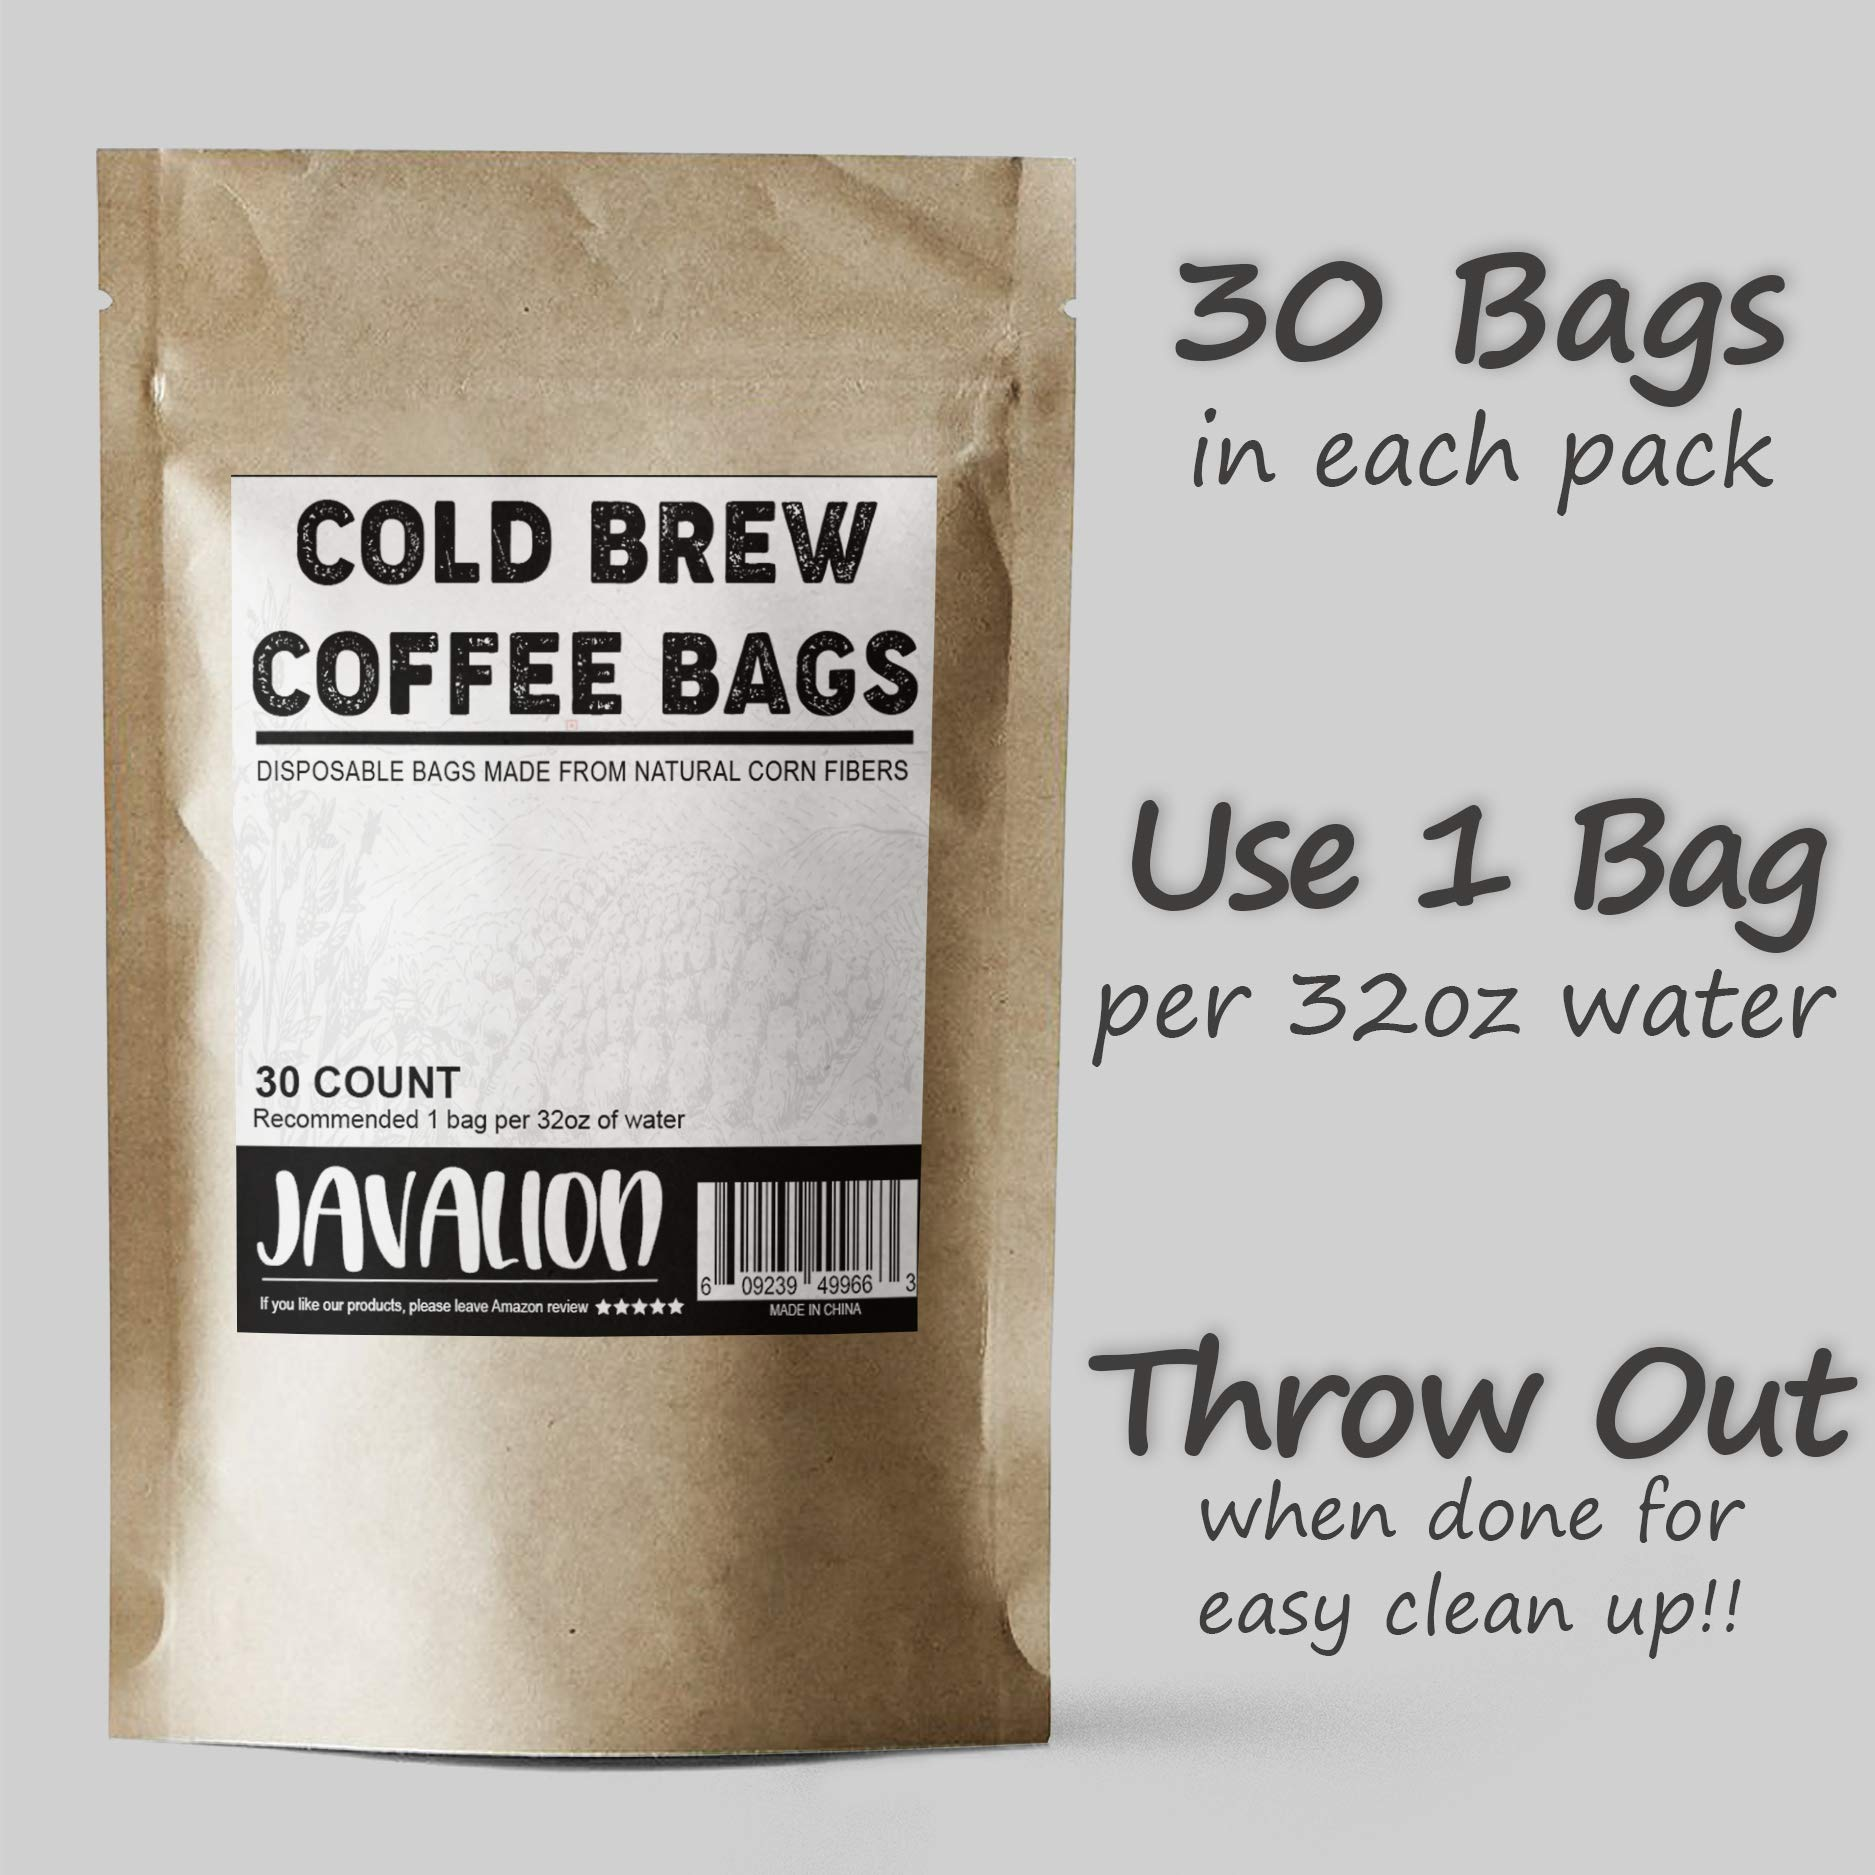 Cold Brew Coffee Bags – Easily Make Great Cold Brew Coffee at Home with JavaLion's All Natural Single-Use Cold Brew Coffee Filters. LARGE 4x6 in. Cold Brew Filters Fine Mesh Brewing Bags [30 COUNT] by JavaLion (Image #3)